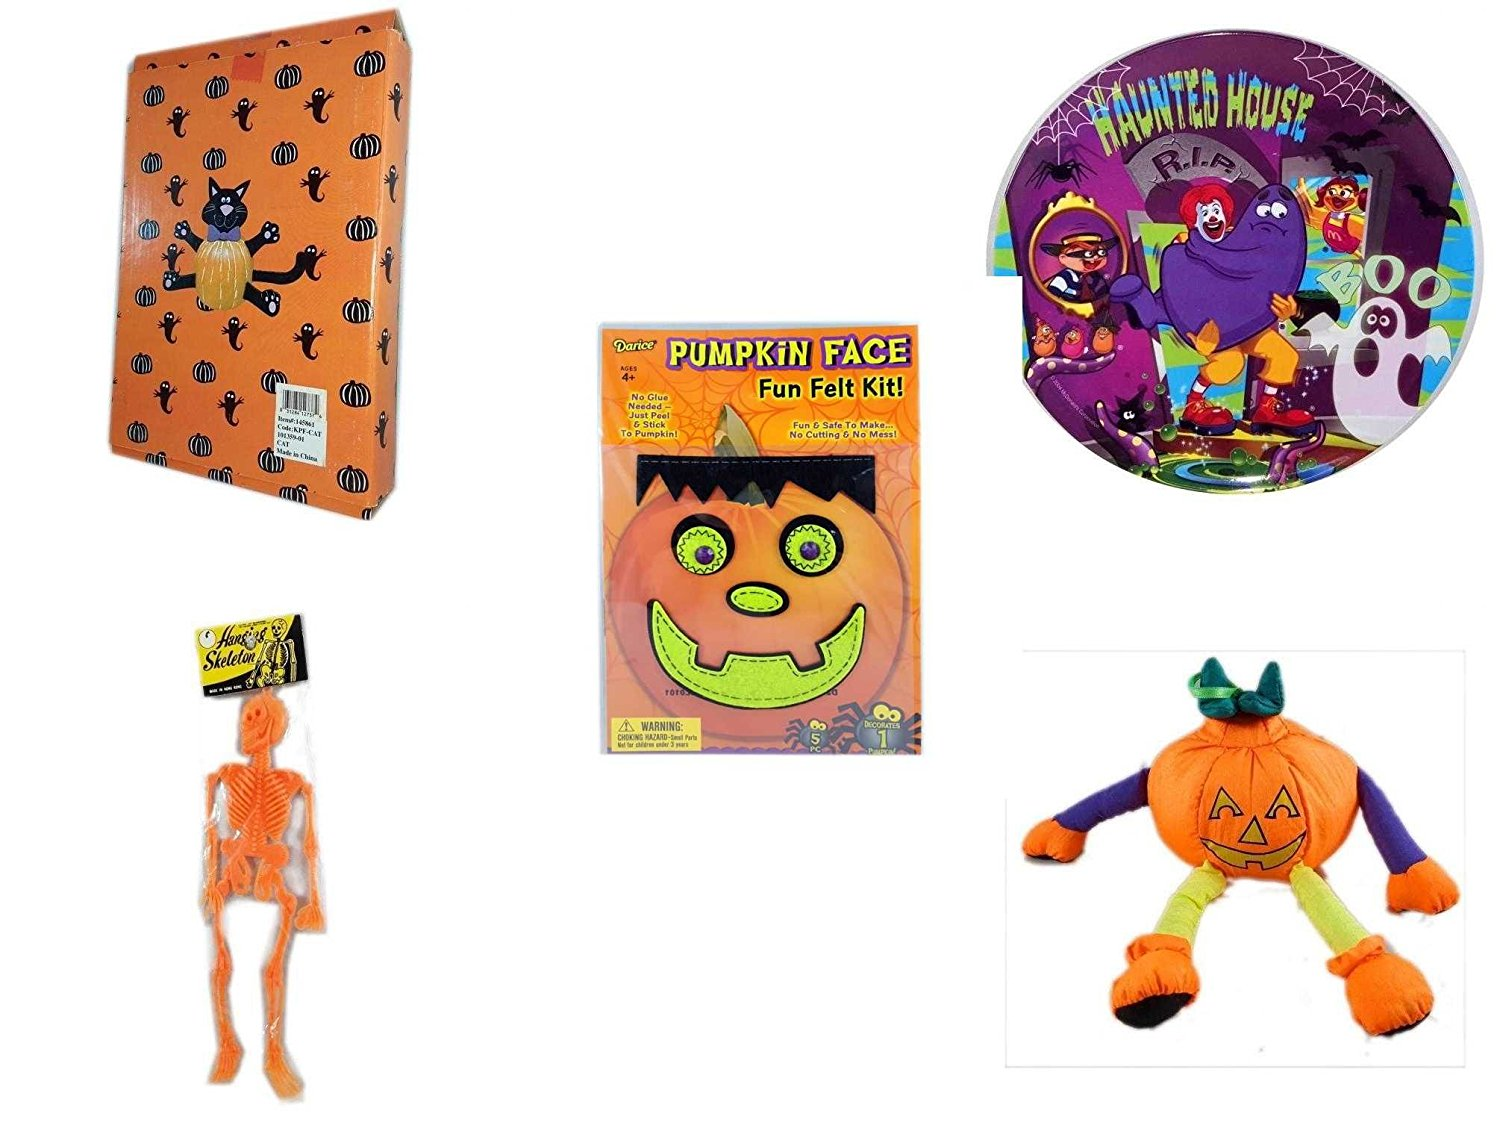 Halloween Fun Gift Bundle [5 piece] - Halloween Cat Pumpkin Push In 5 Piece Head Arms Legs - McDonald's Haunted House, RIP, Boo Halloween Plate - Darice Pumpkin Face Fun Felt Kit - Frankenstein - Ha